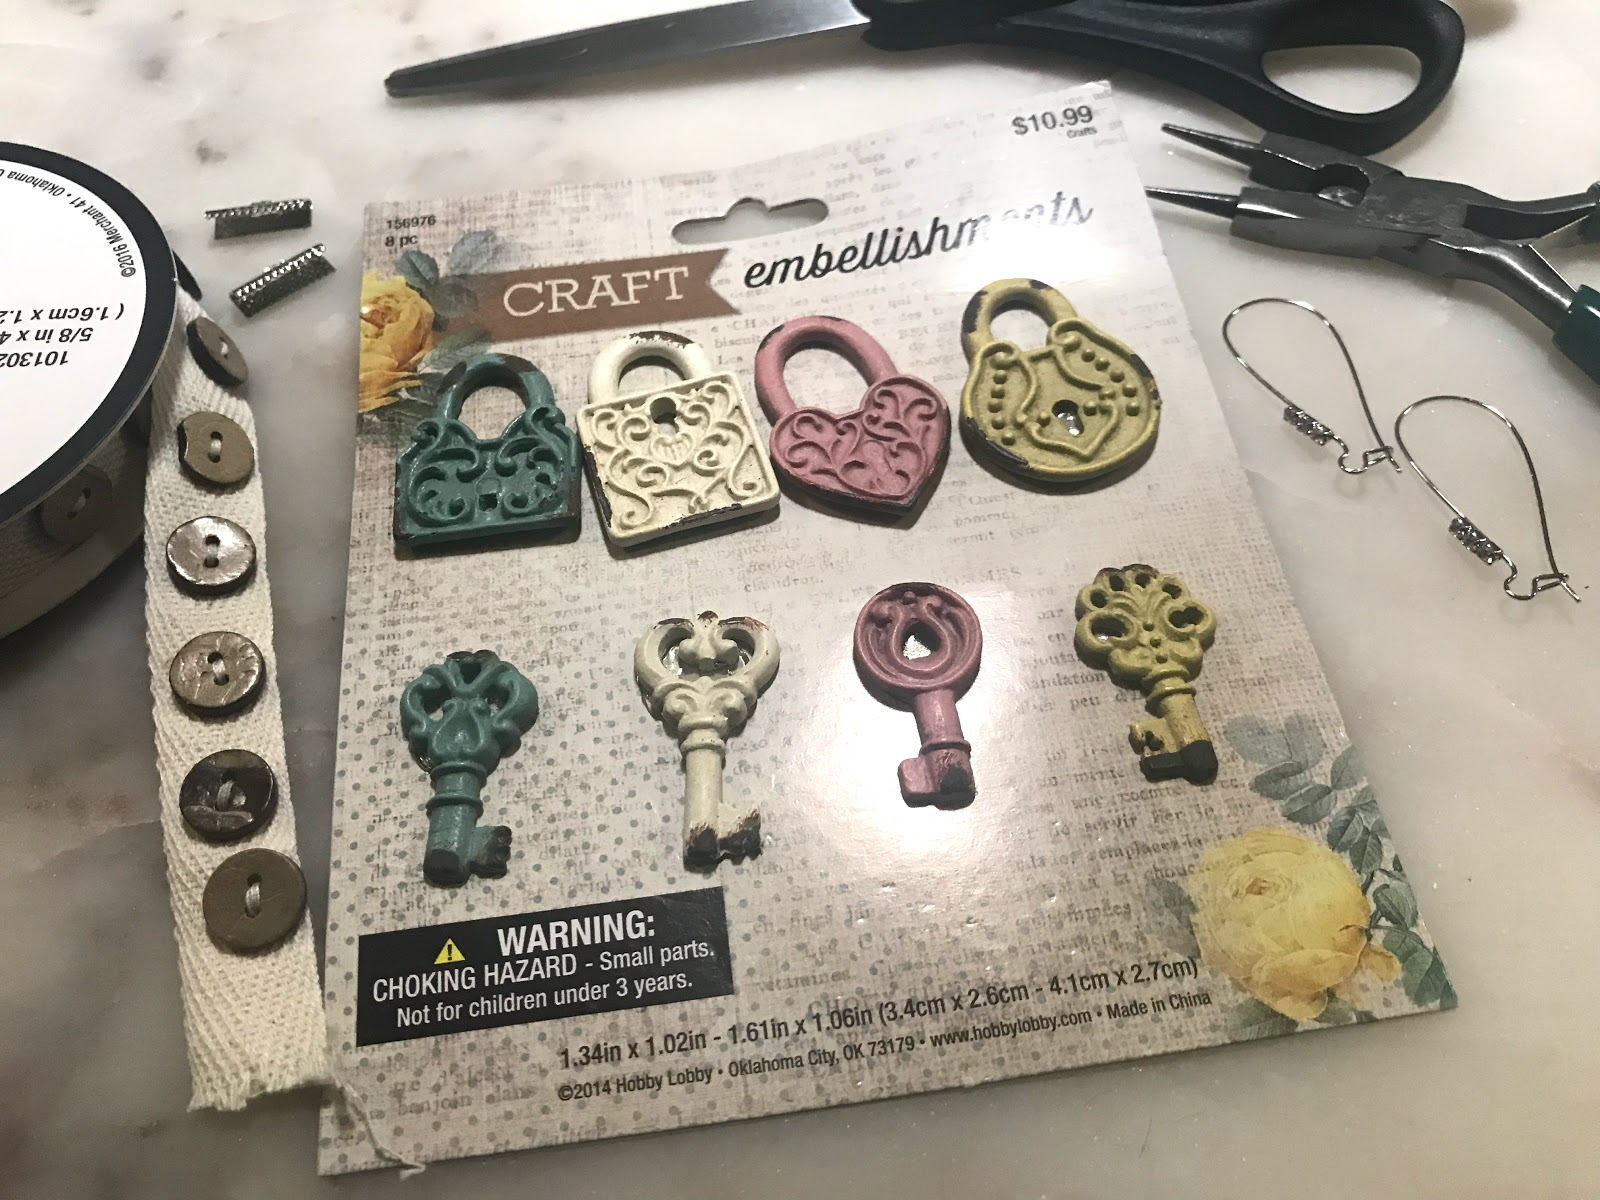 Image: All the items being used to make ugly earrings. Craft embellishments-scissors-ribbon trim-ribbon crimps-pliers. Seen first on bits and babbles blog